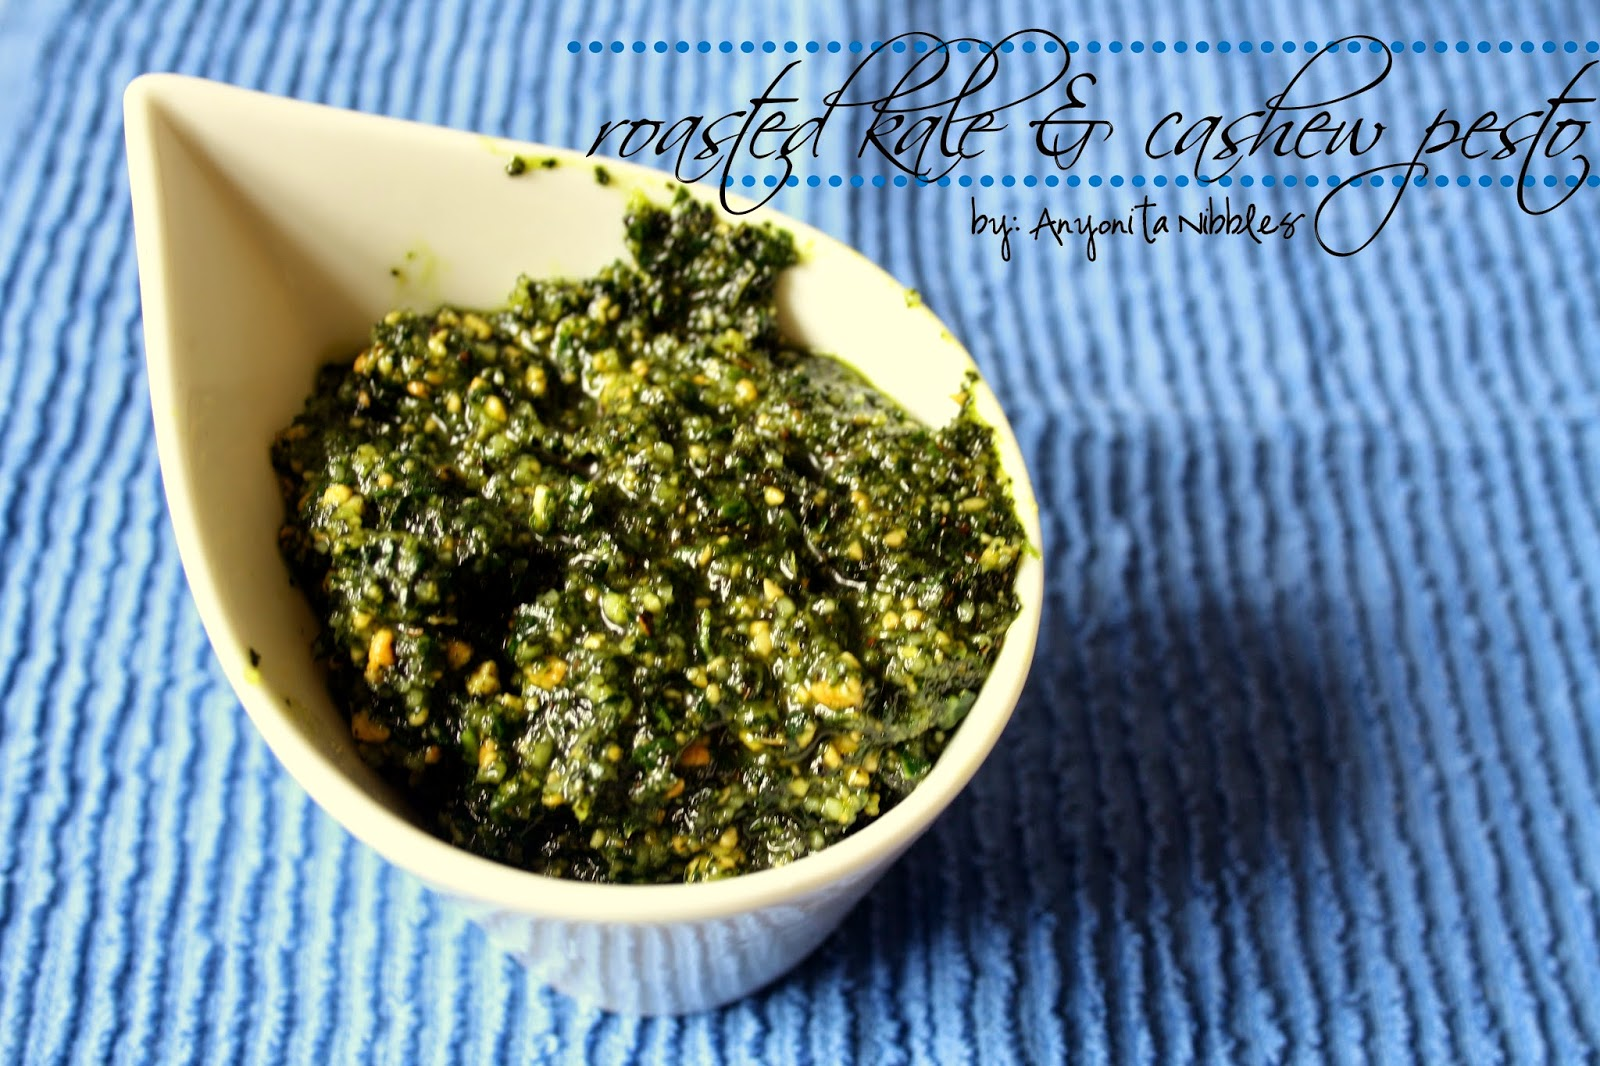 Using oven roasted kale and salted cashews, this quick pesto is made in the food processor.